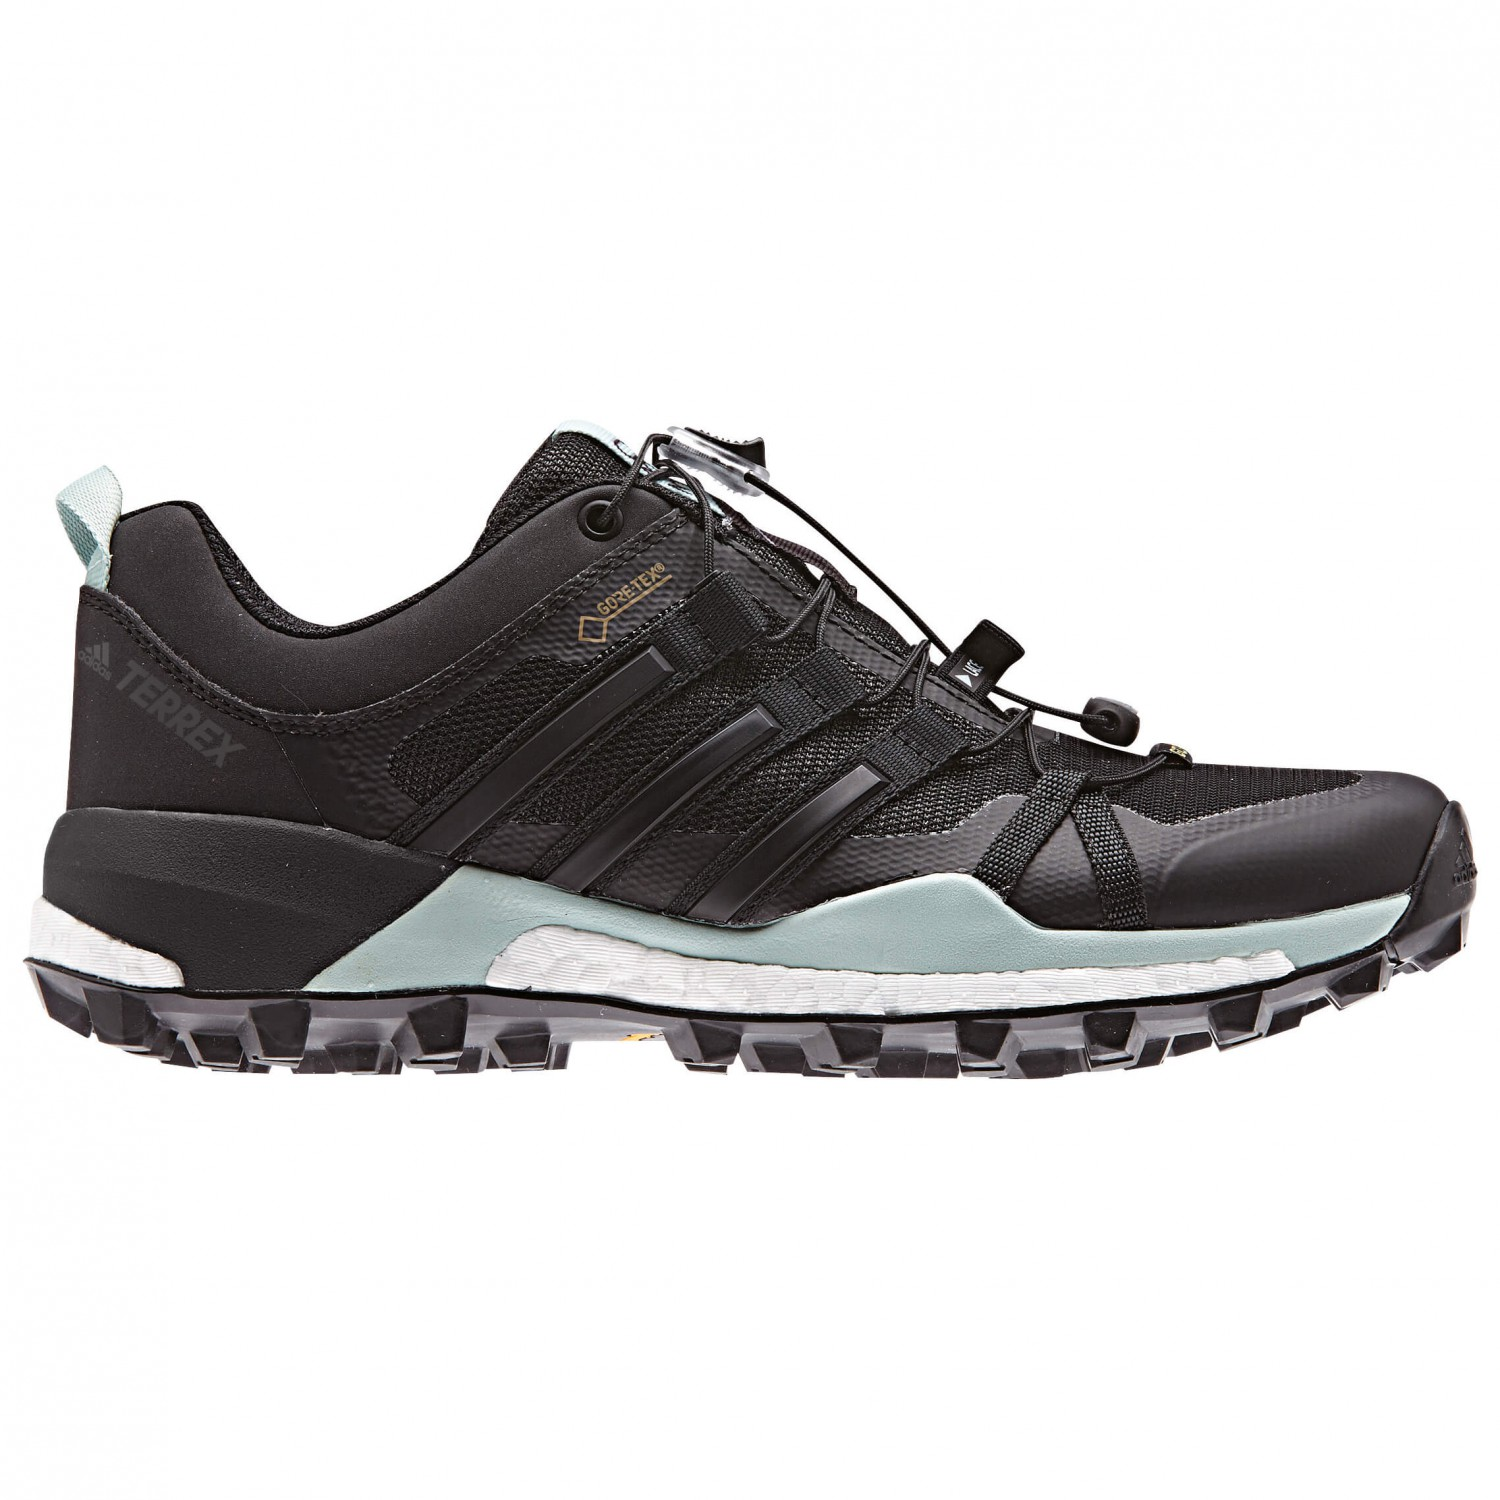 adidas - Women's Terrex Skychaser GTX - Approach shoes - Core Black / Core  Black / Ash Green S18 | 5 (UK)